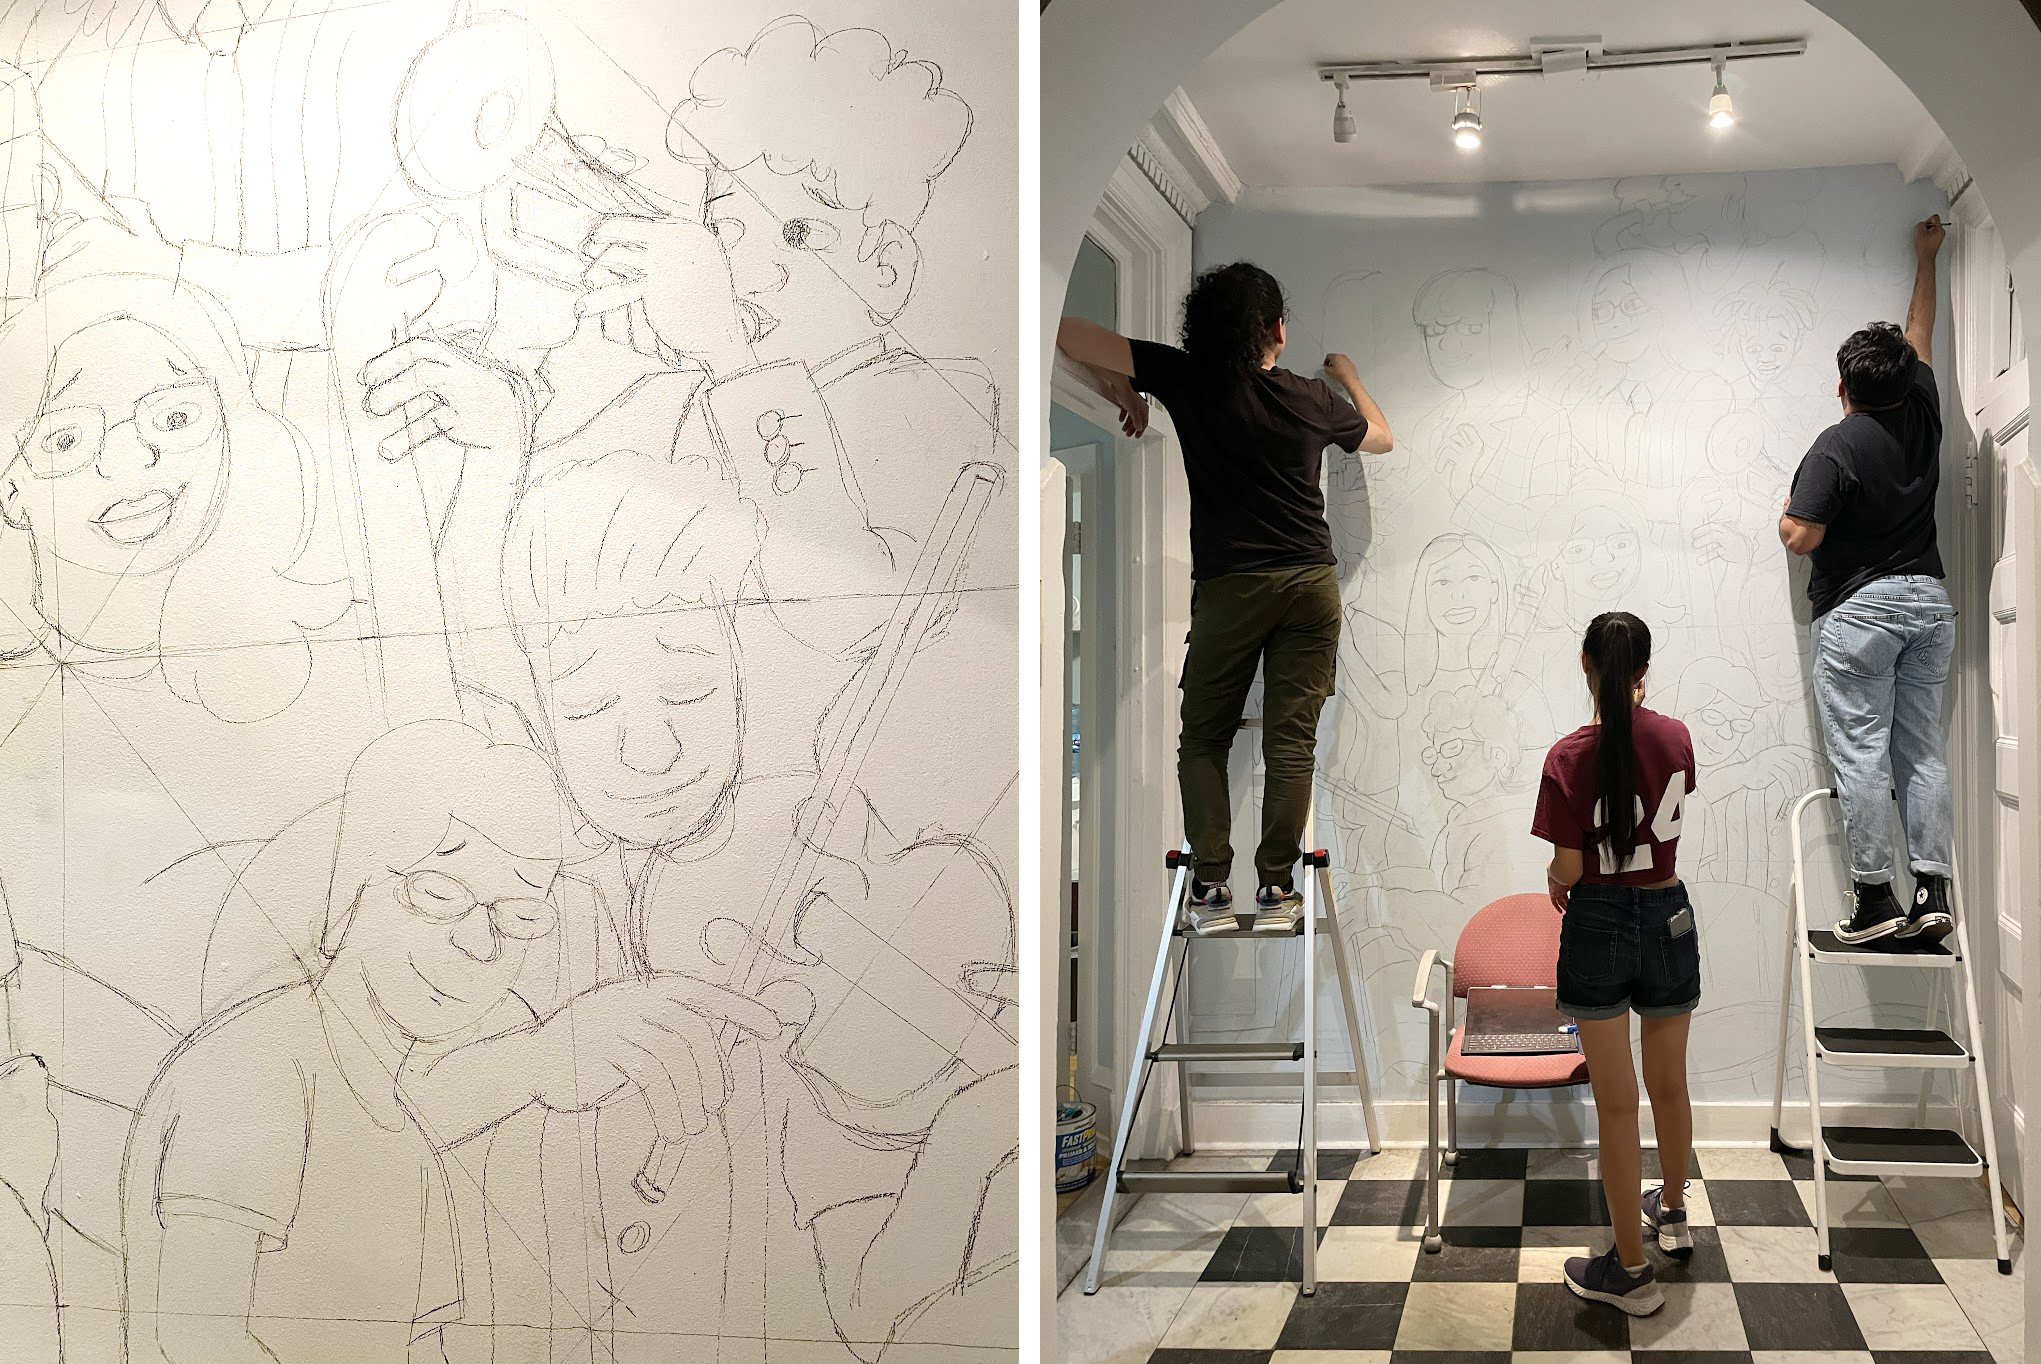 Collage of two photos: Left is a pencil sketch of the mural and right, three people shown from the back sketching the mural on the wall